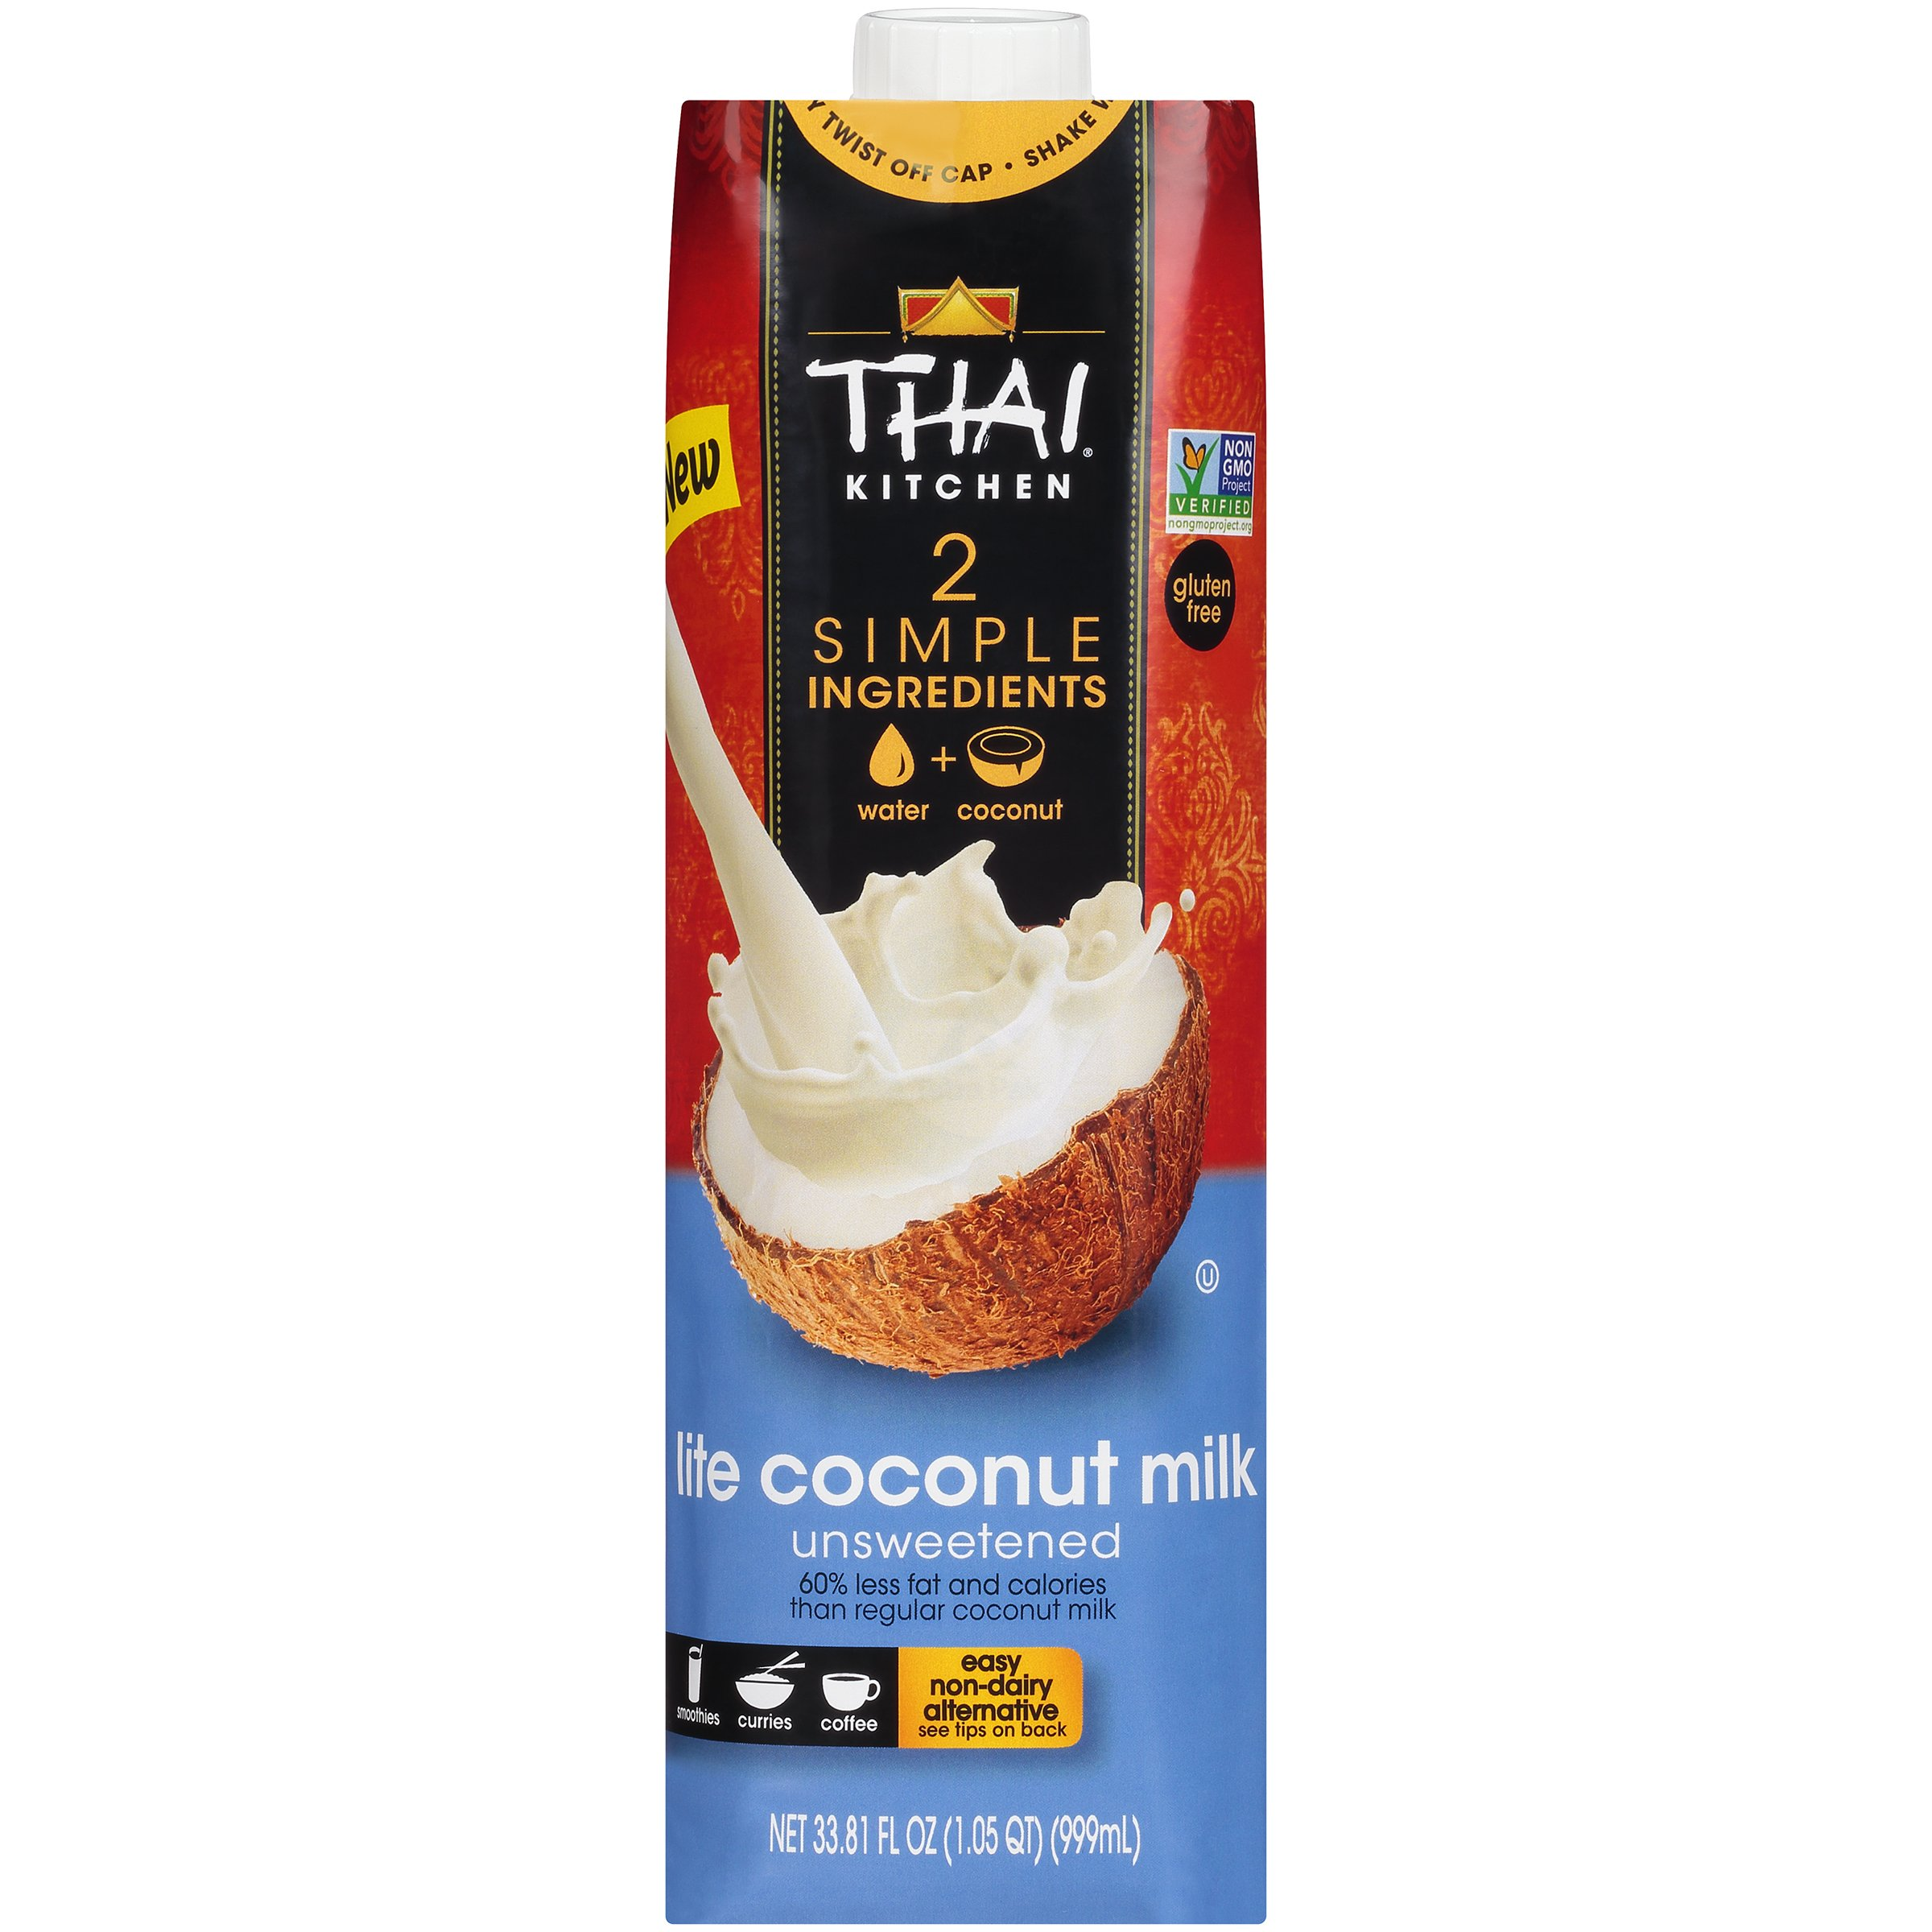 Thai Kitchen Dairy Free Lite Coconut Milk (Resealable, Just Coconuts & Water, BPA Free Packaging, Unsweetened), 33.81 fl oz (Pack of 6) by Thai Kitchen (Image #1)